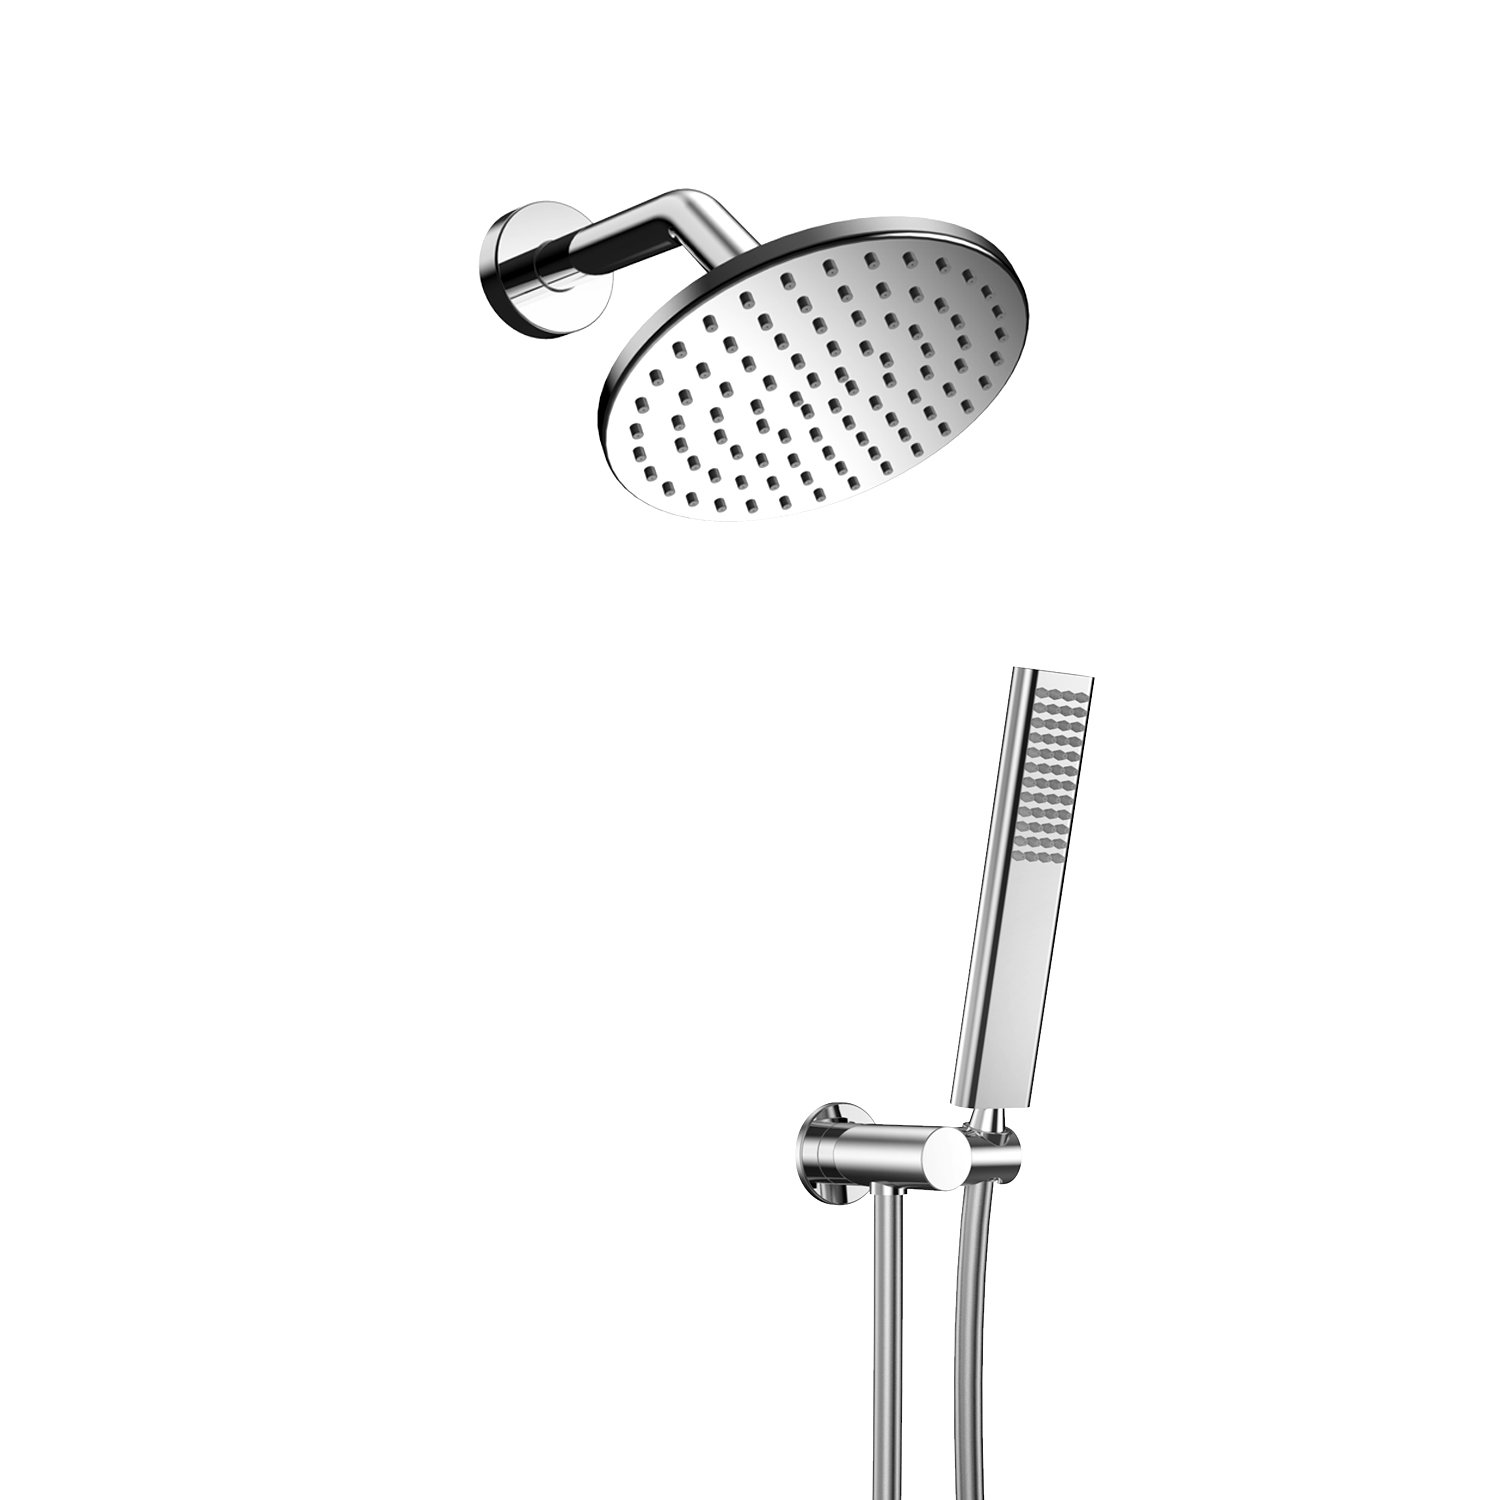 EMBATHER Brass dual-Function Spray Fixed Shower Head Handheld Shower Wand Combo by EMBATHER (Image #1)